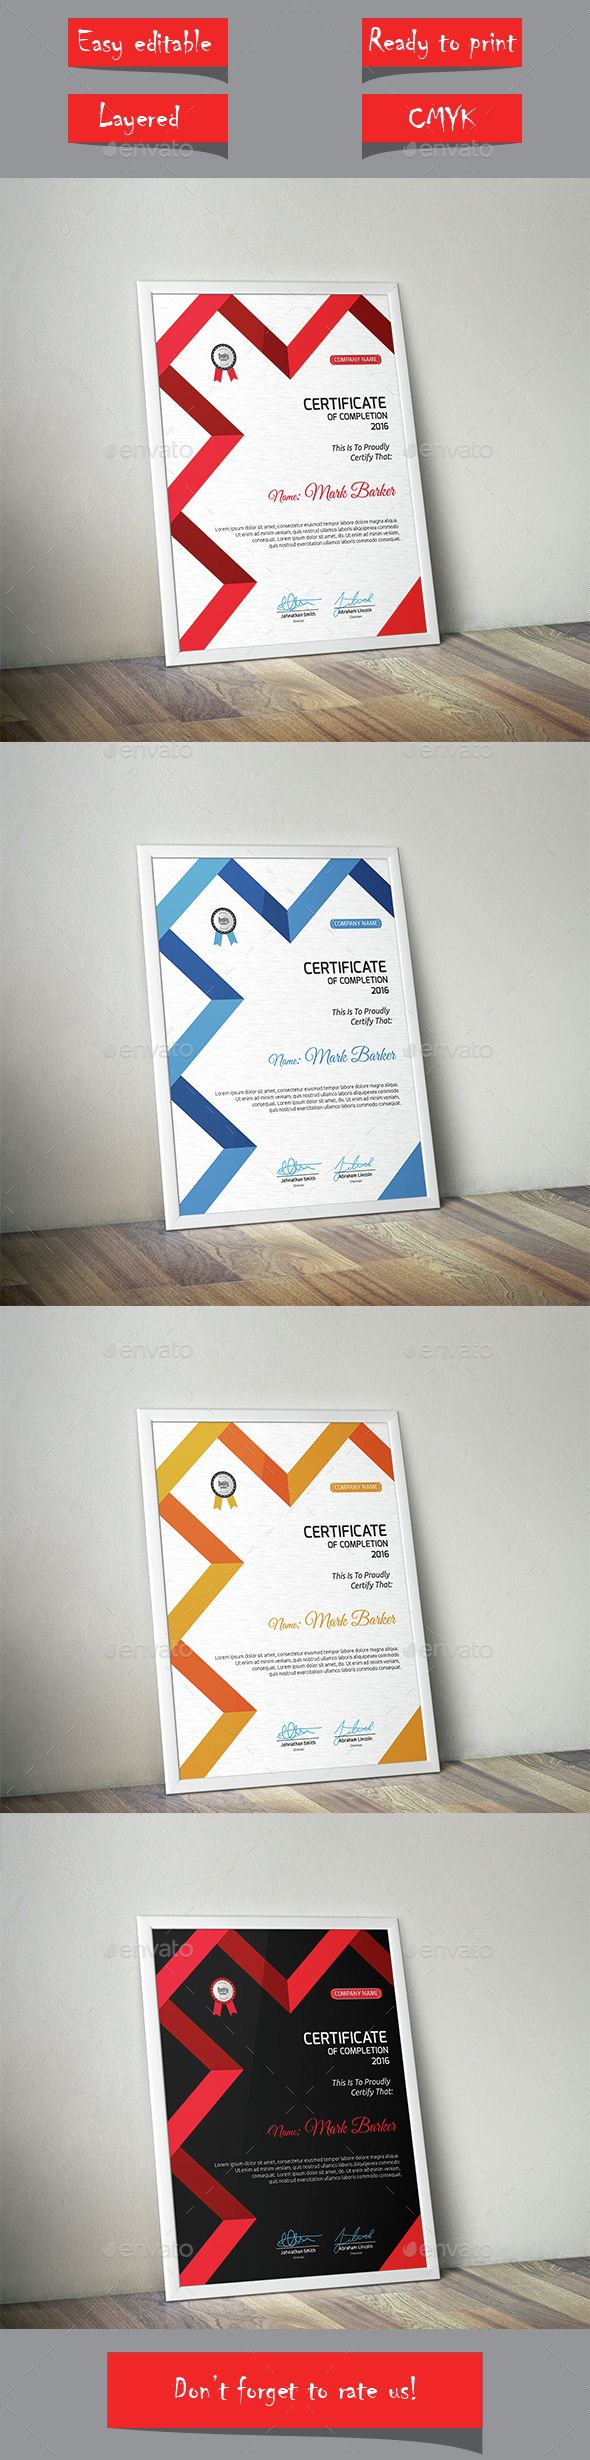 Certificate - Certificate Template Vector EPS. Download here: http://graphicriver.net/item/certificate/14875203?s_rank=49&ref=yinkira